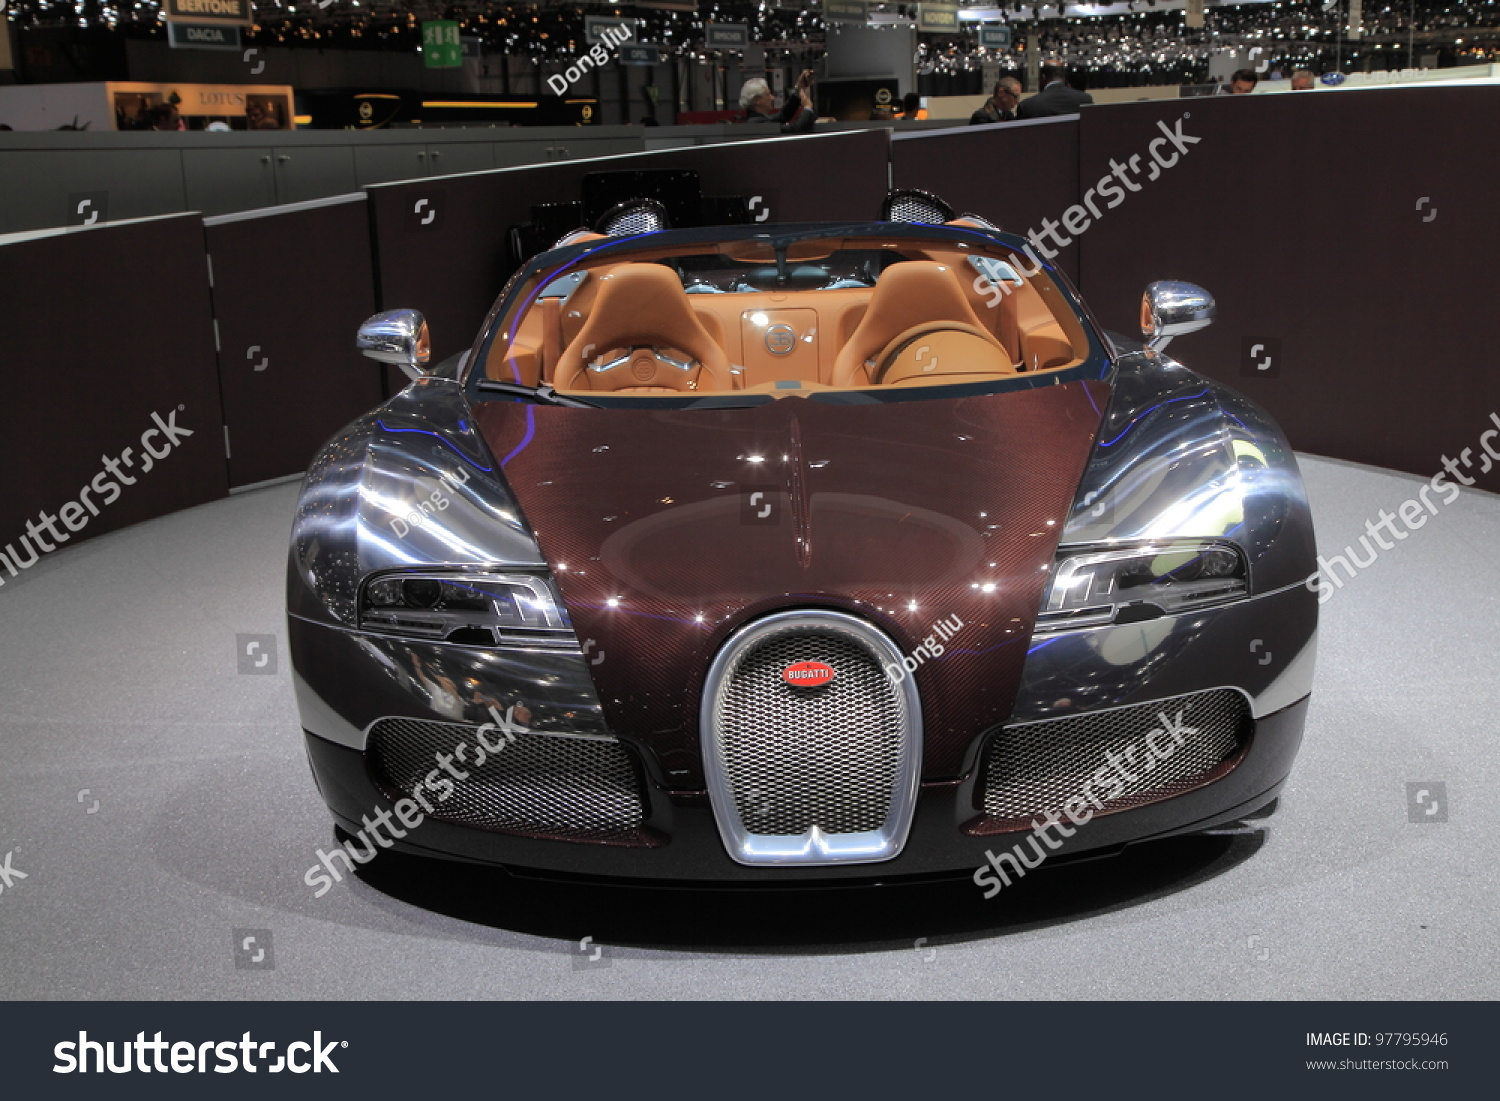 geneva march 8 a bugatti veyron grand sport car on display at 82th international motor show. Black Bedroom Furniture Sets. Home Design Ideas